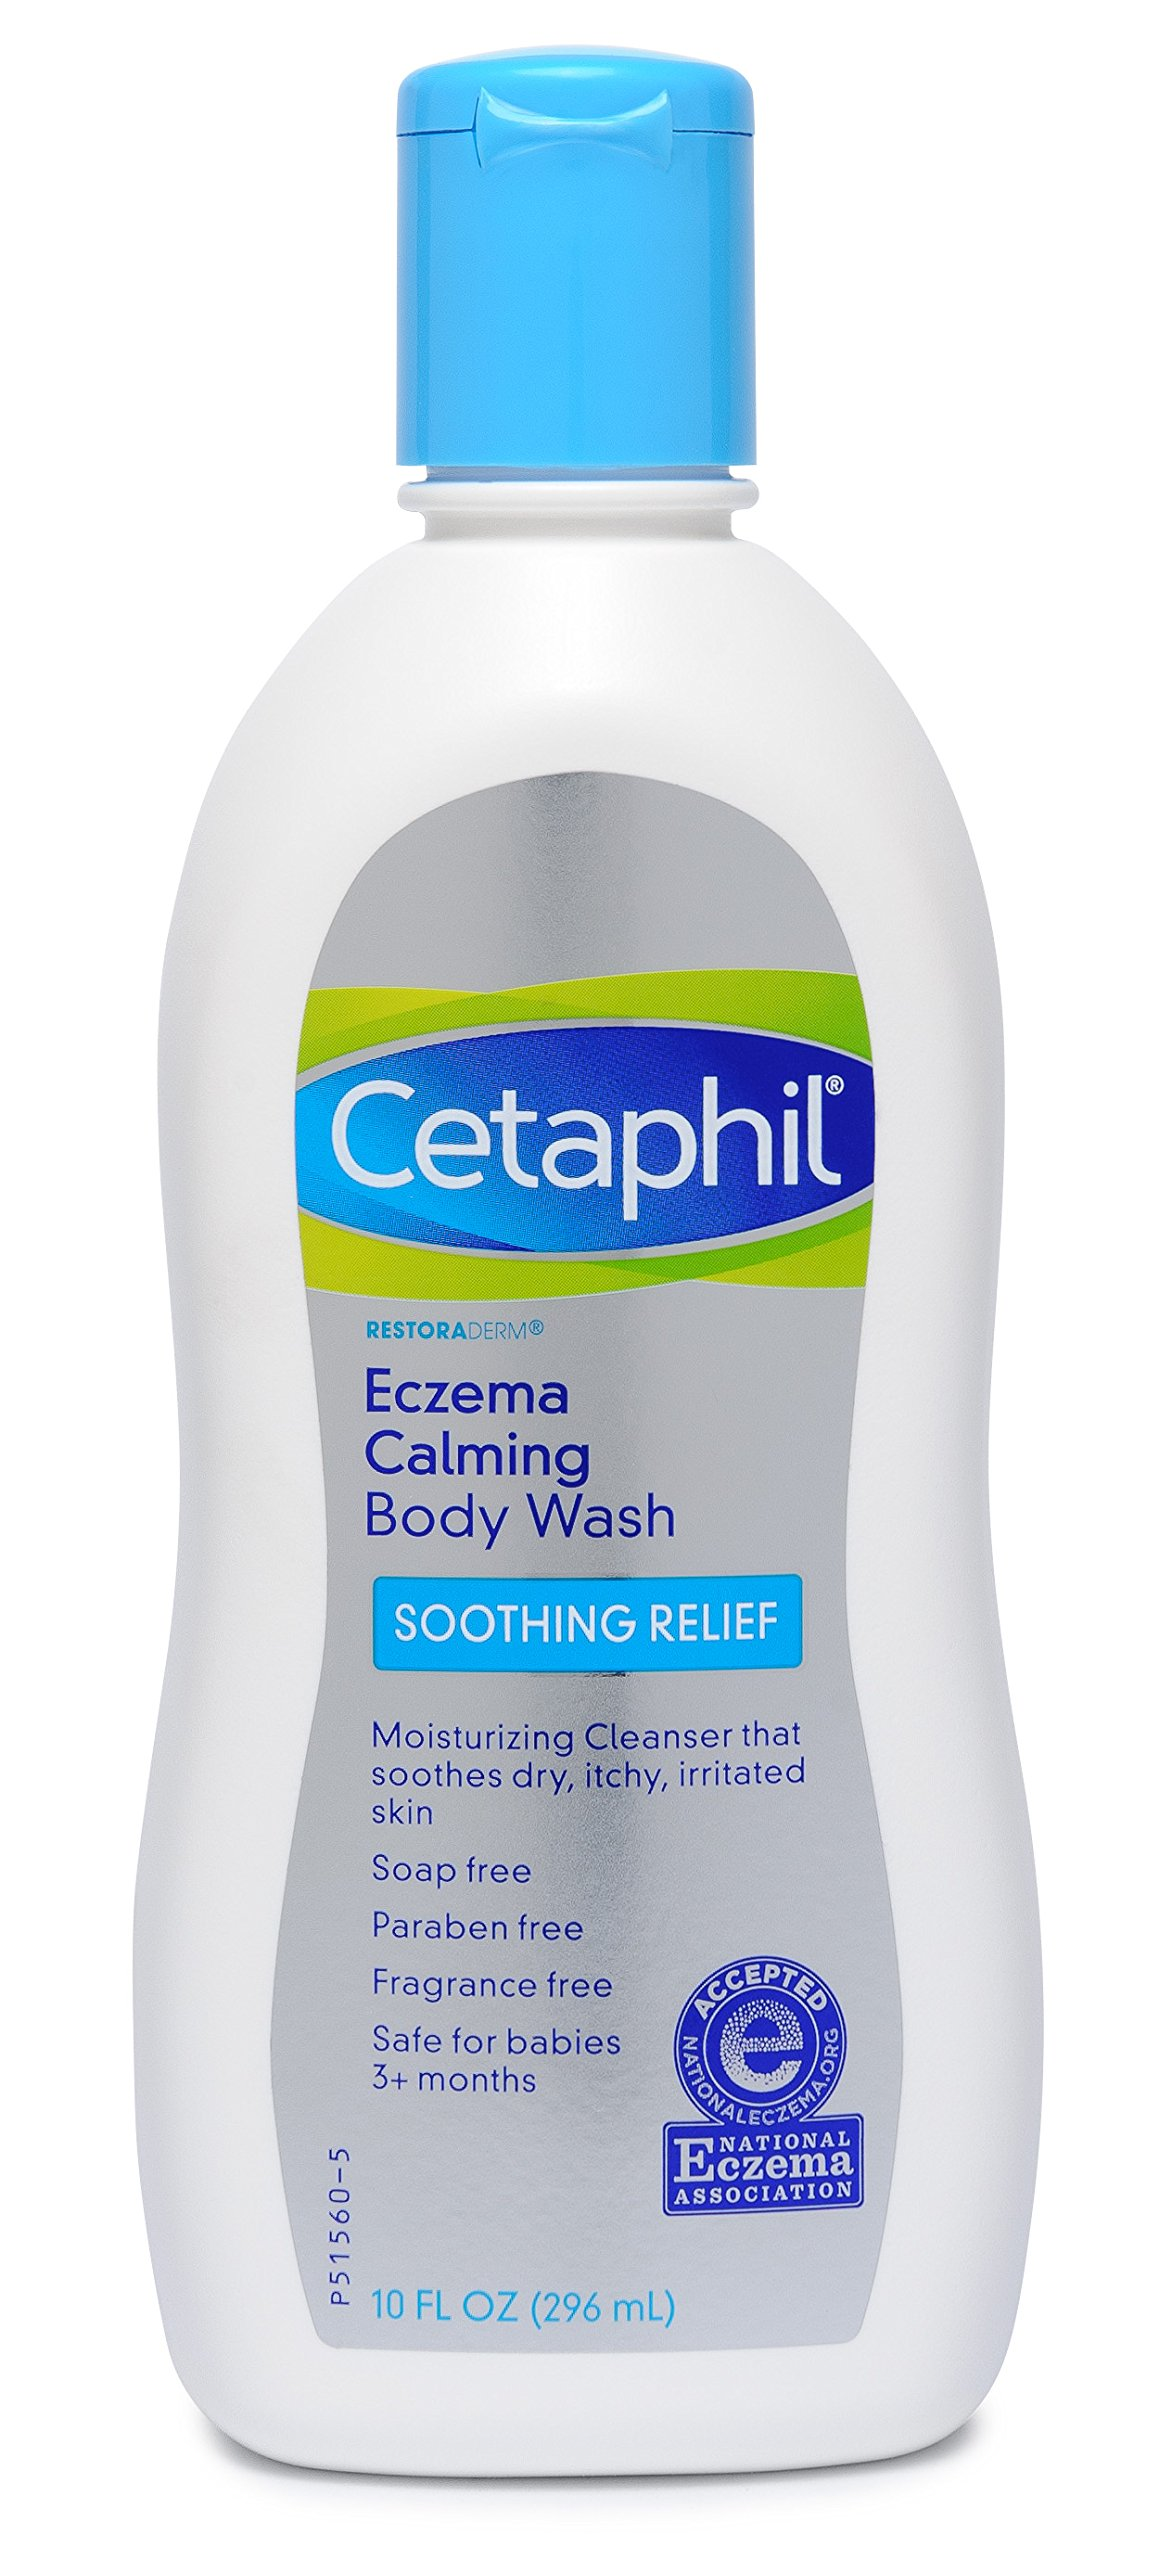 Cheap Cetaphil Restoraderm Lotion Find Body Wash 295ml Get Quotations Pro Eczema Calming 10 Ounce Packaging May Vary